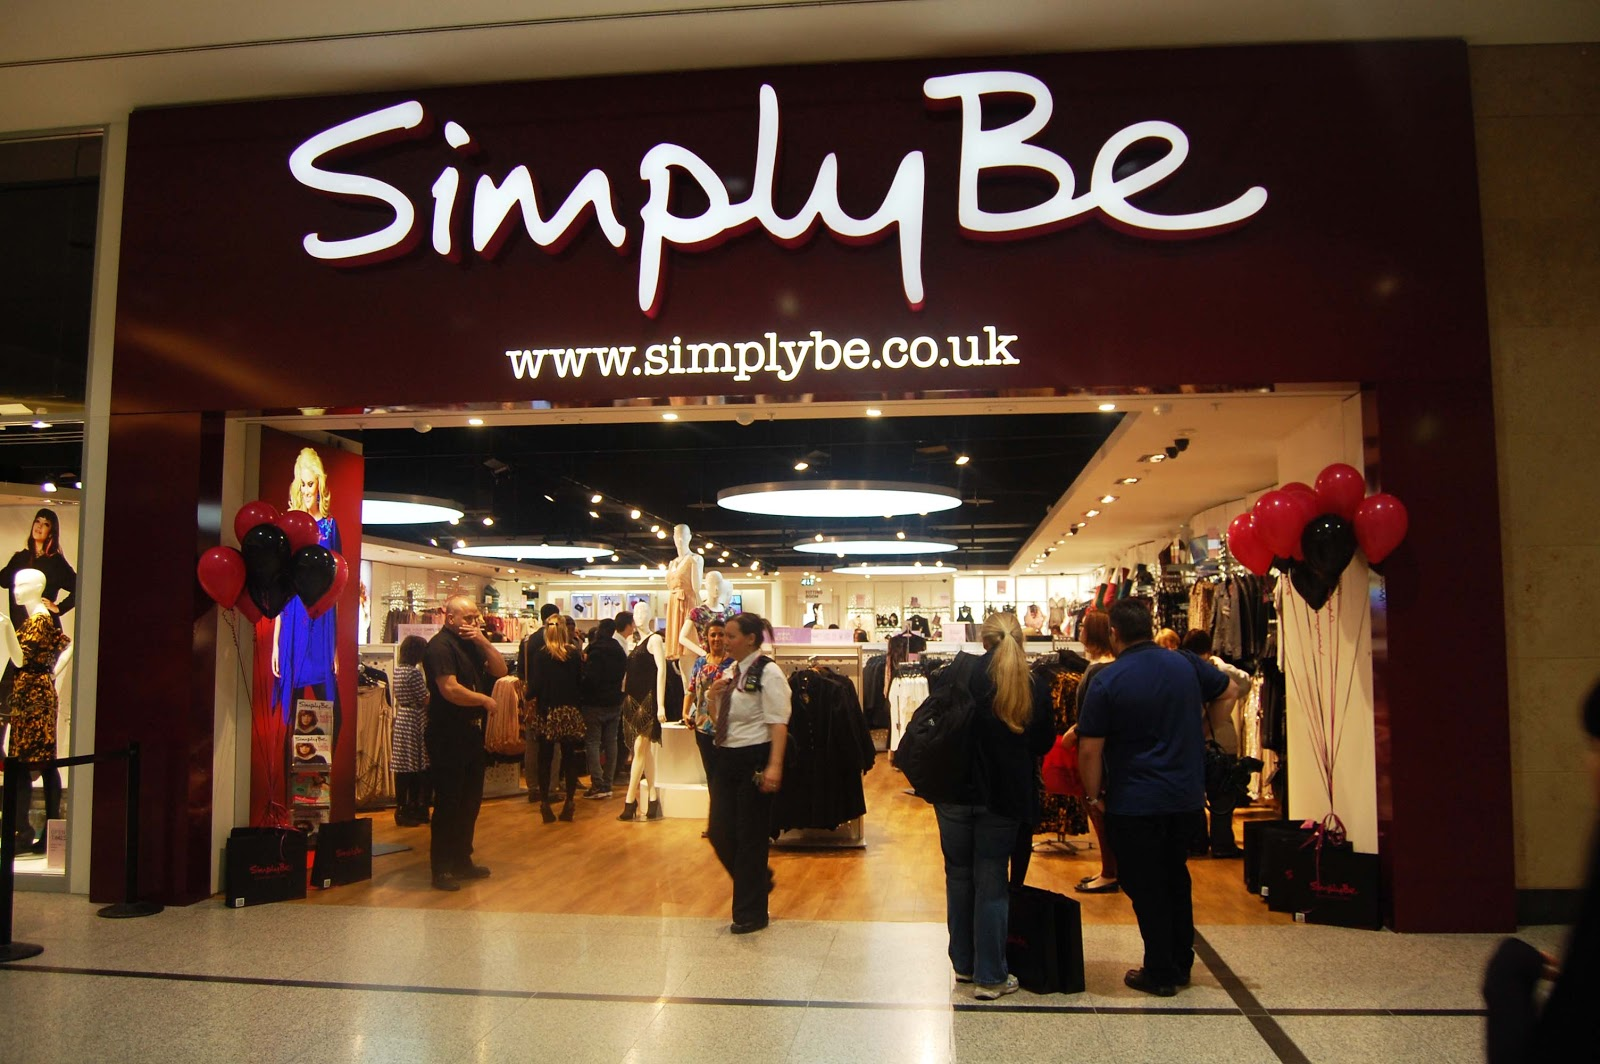 Nov 20, · This is Simply Be. Stay ahead of the curve, get plus size fashion at your fingertips and enjoy shopping without the stress with the Simply Be app! We want our customers to be confident in their curves and believe that style shouldn't come with a dress size/5().